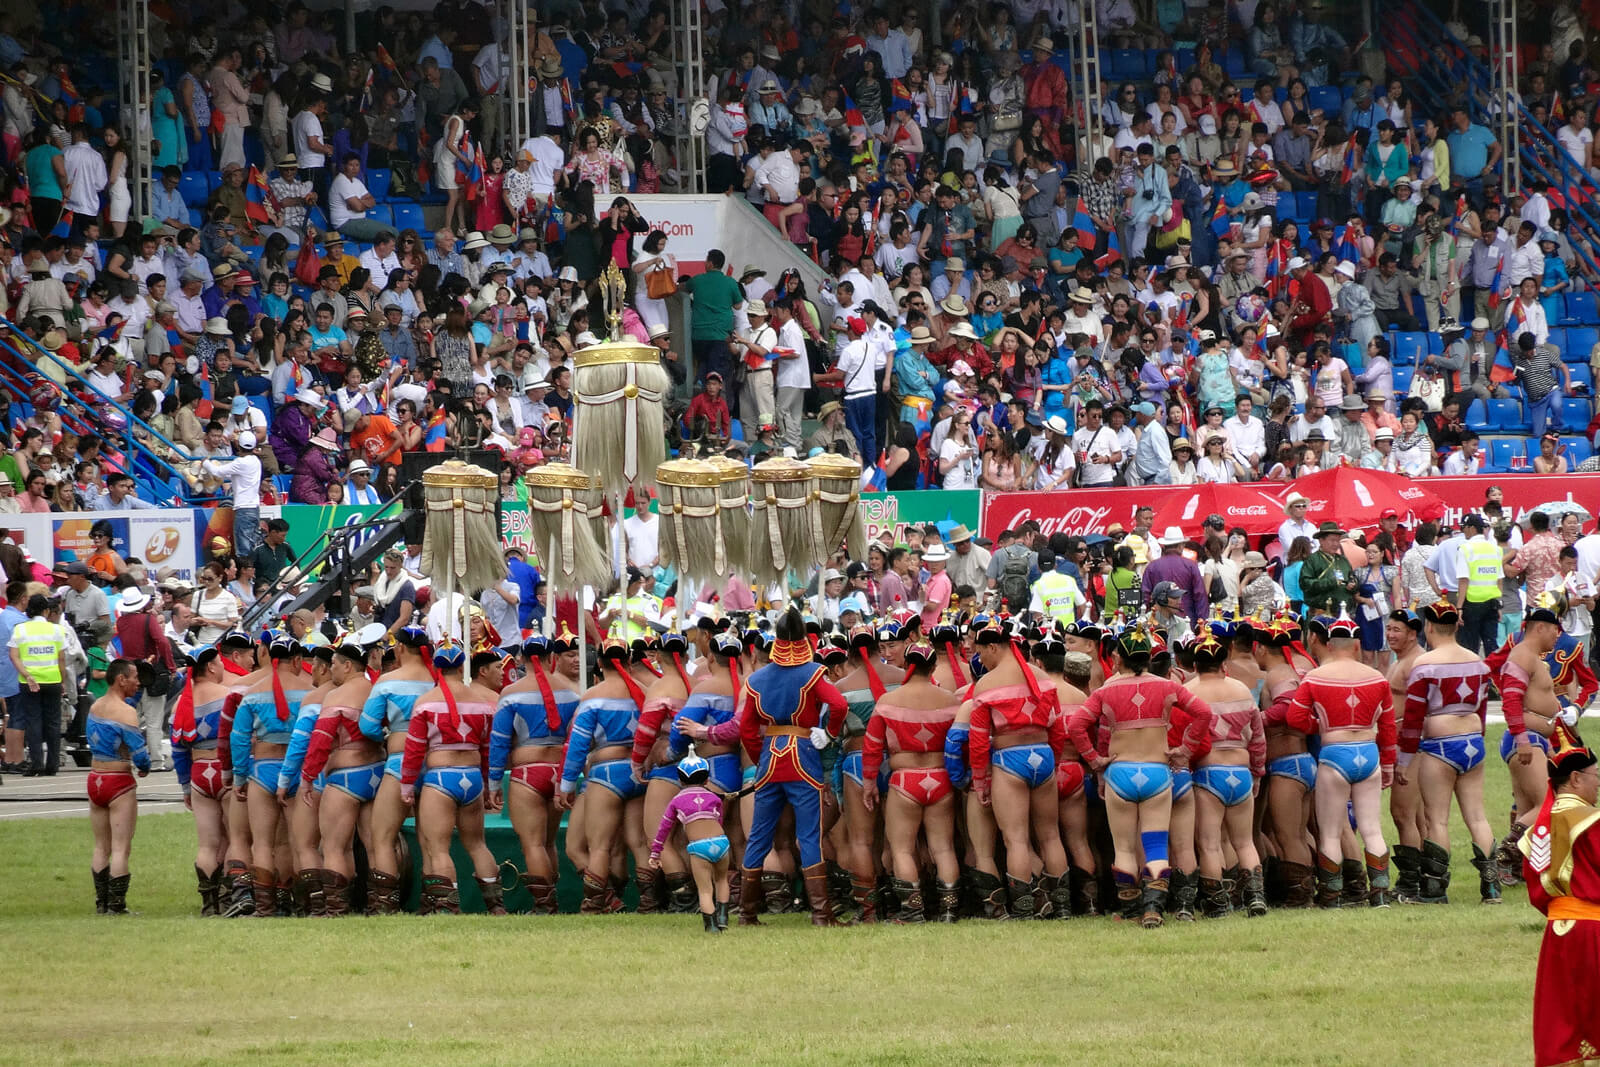 Wrestlers gathering at the Naadam festival opening ceremony in Ulaanbaatar, Mongolia, at the National Sports Stadium